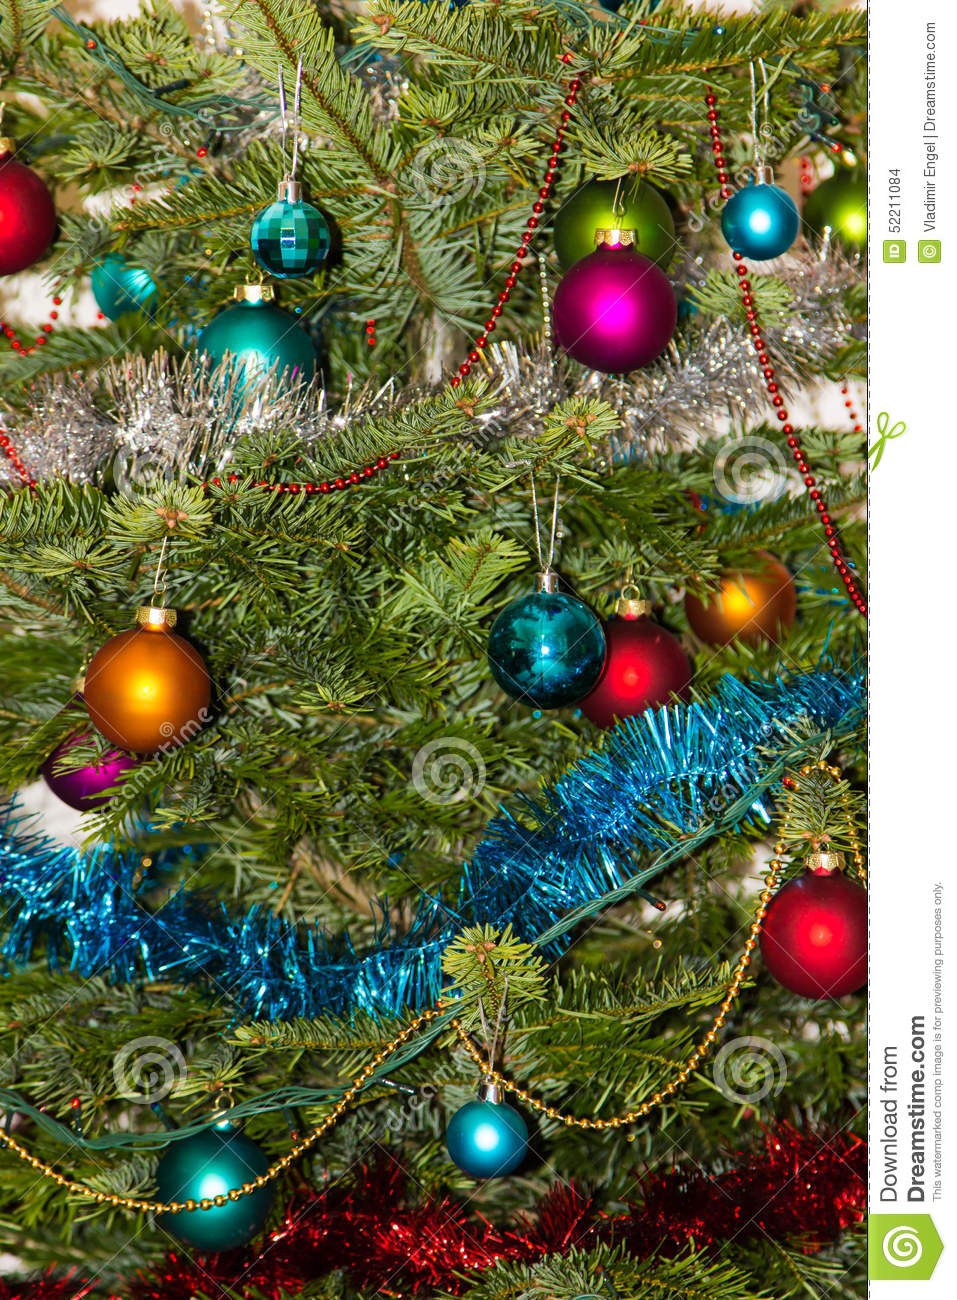 Christmas Tree Decorations 2015 New Year Stock Photo